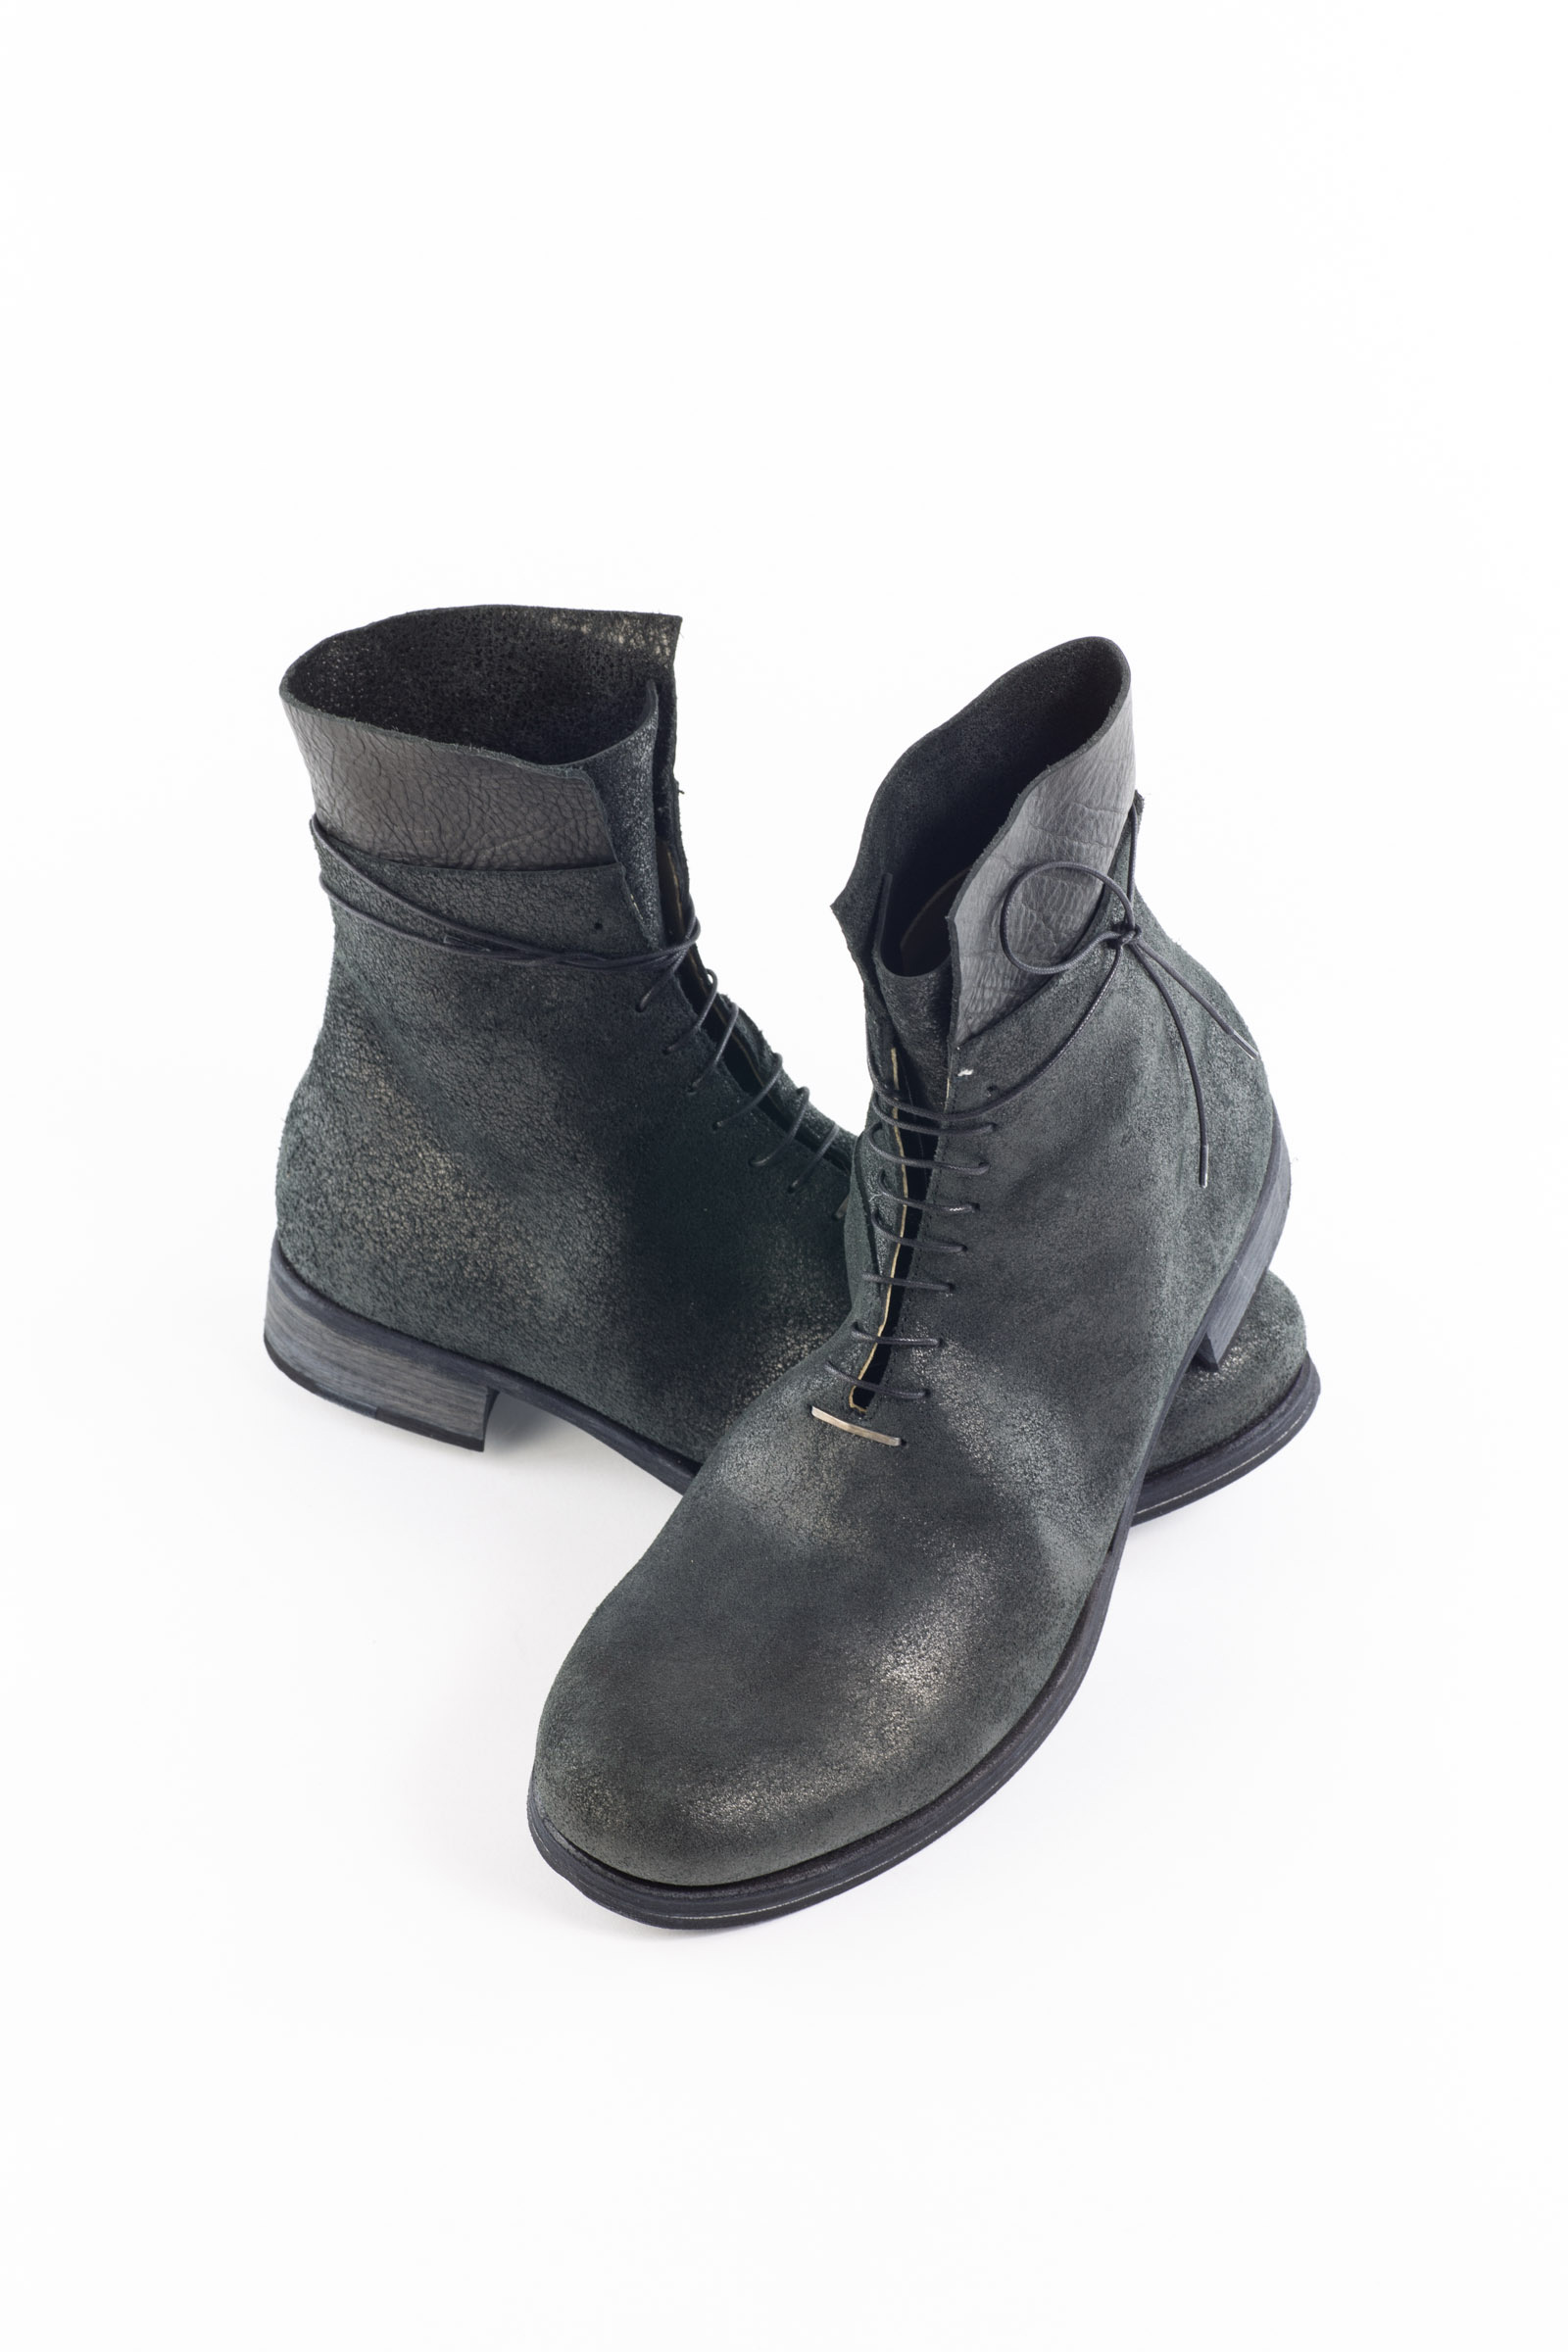 Schnürboots Anthrazit Black